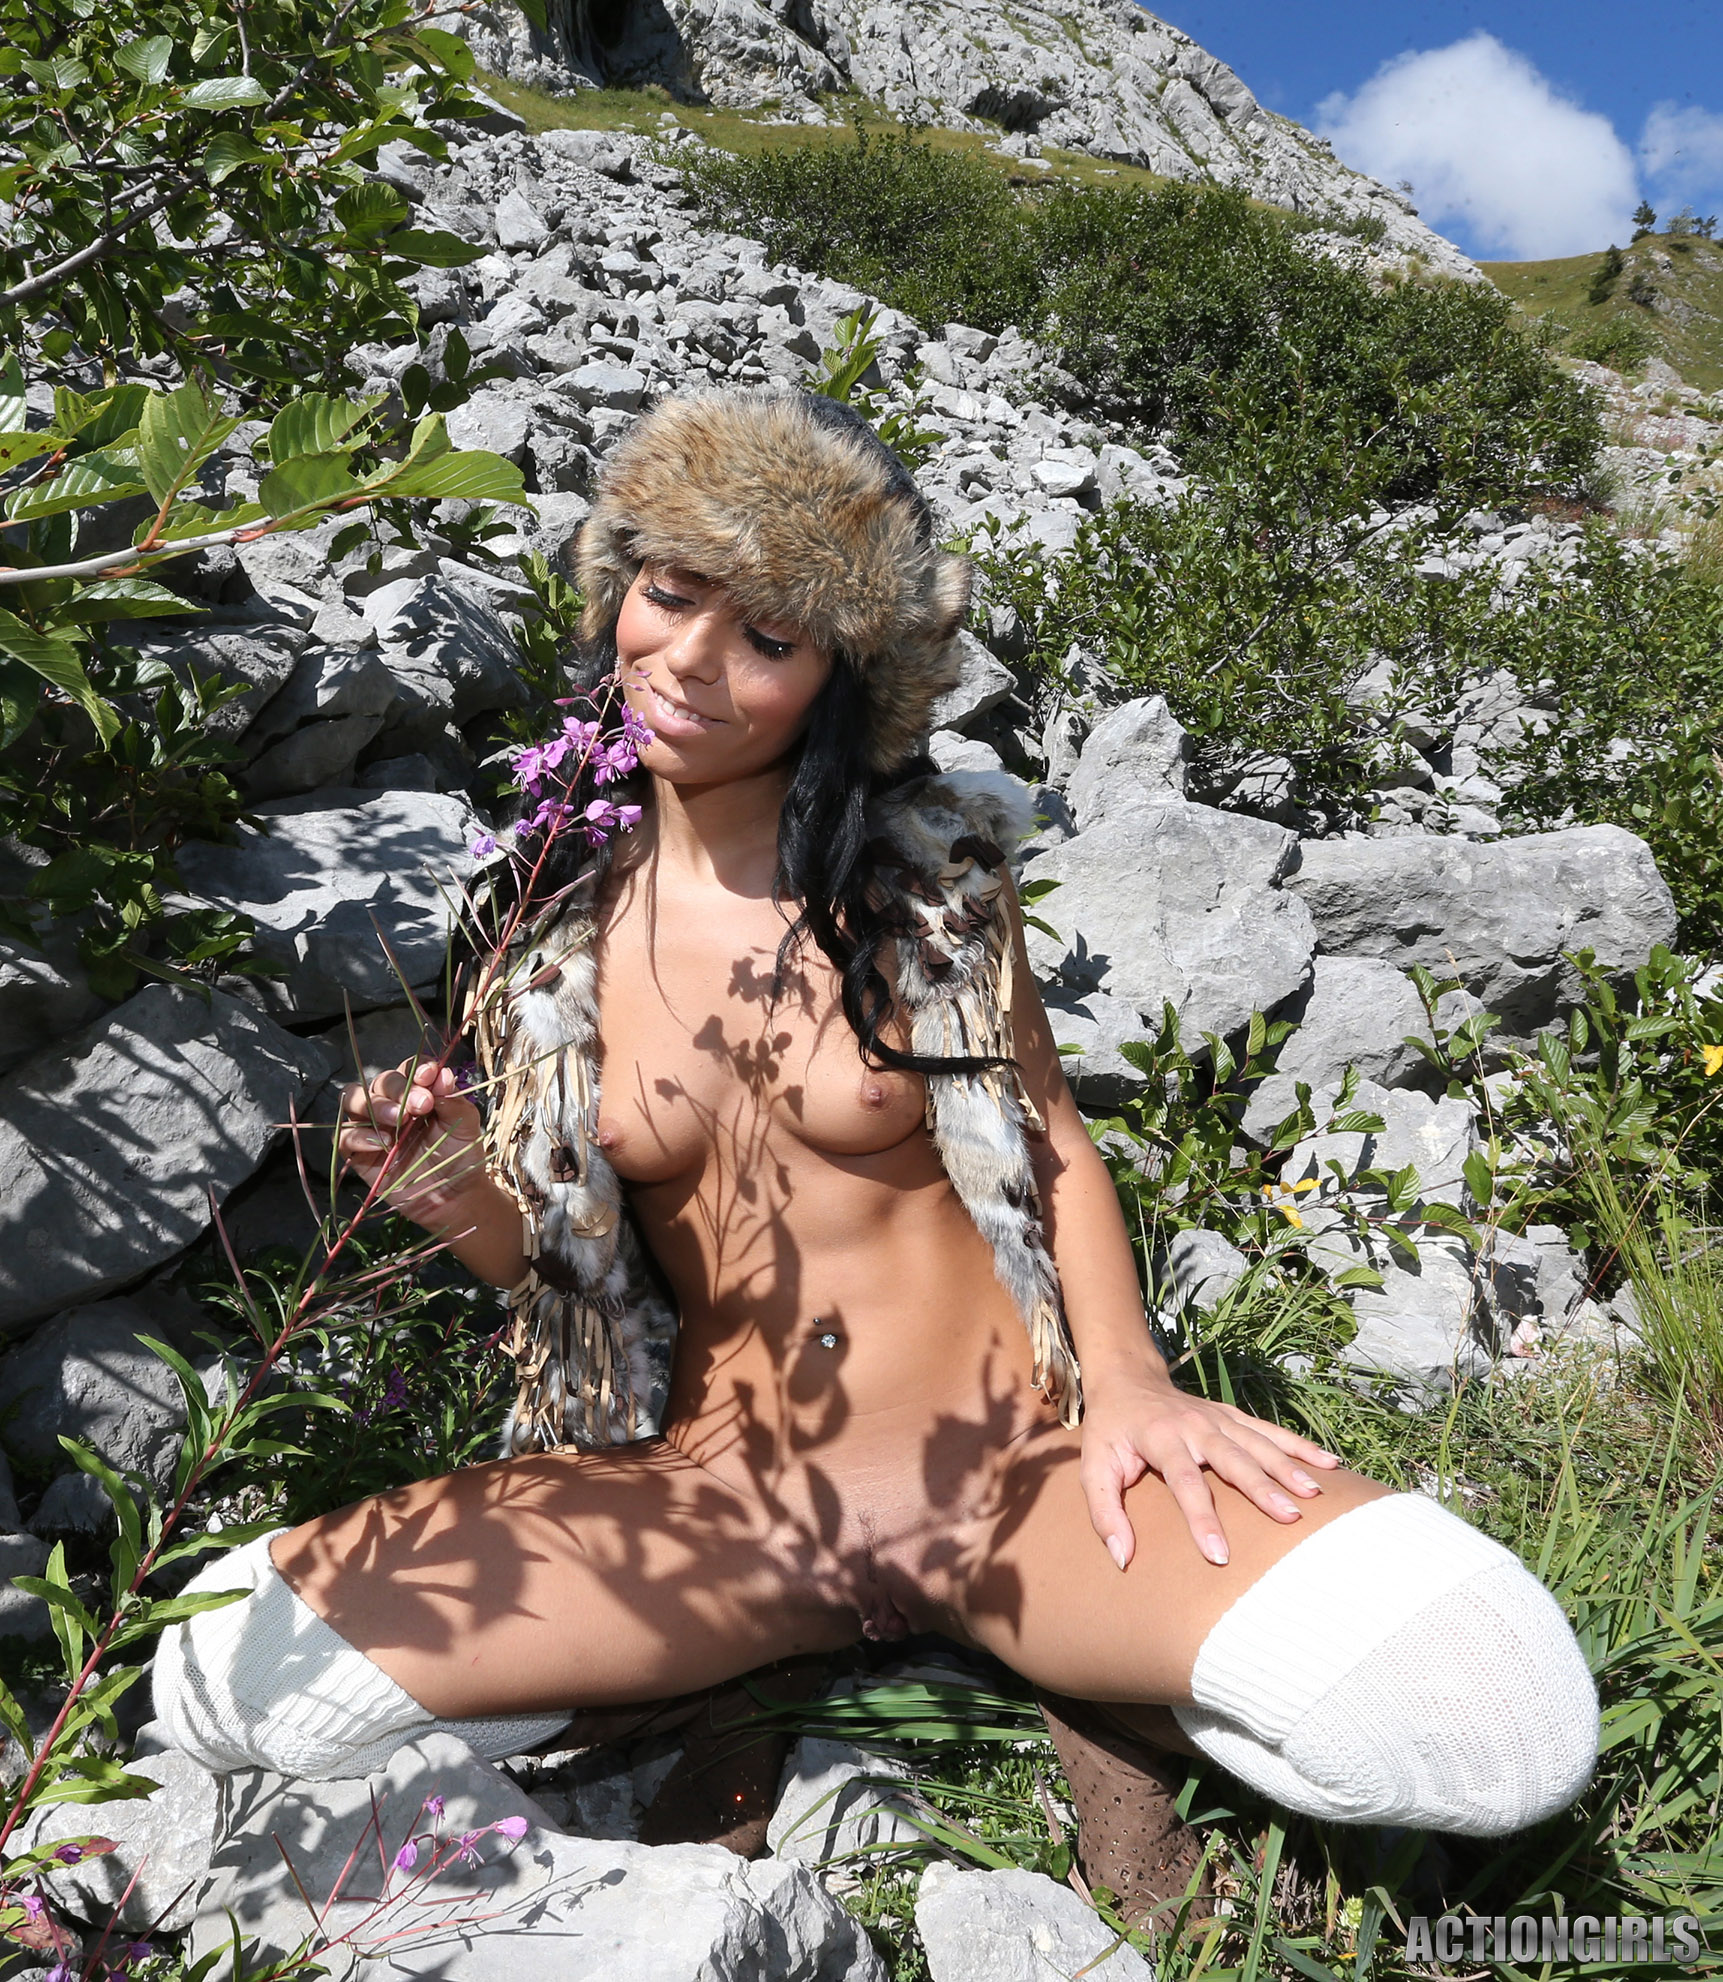 ww4 actiongirls gallery289 Gabriella